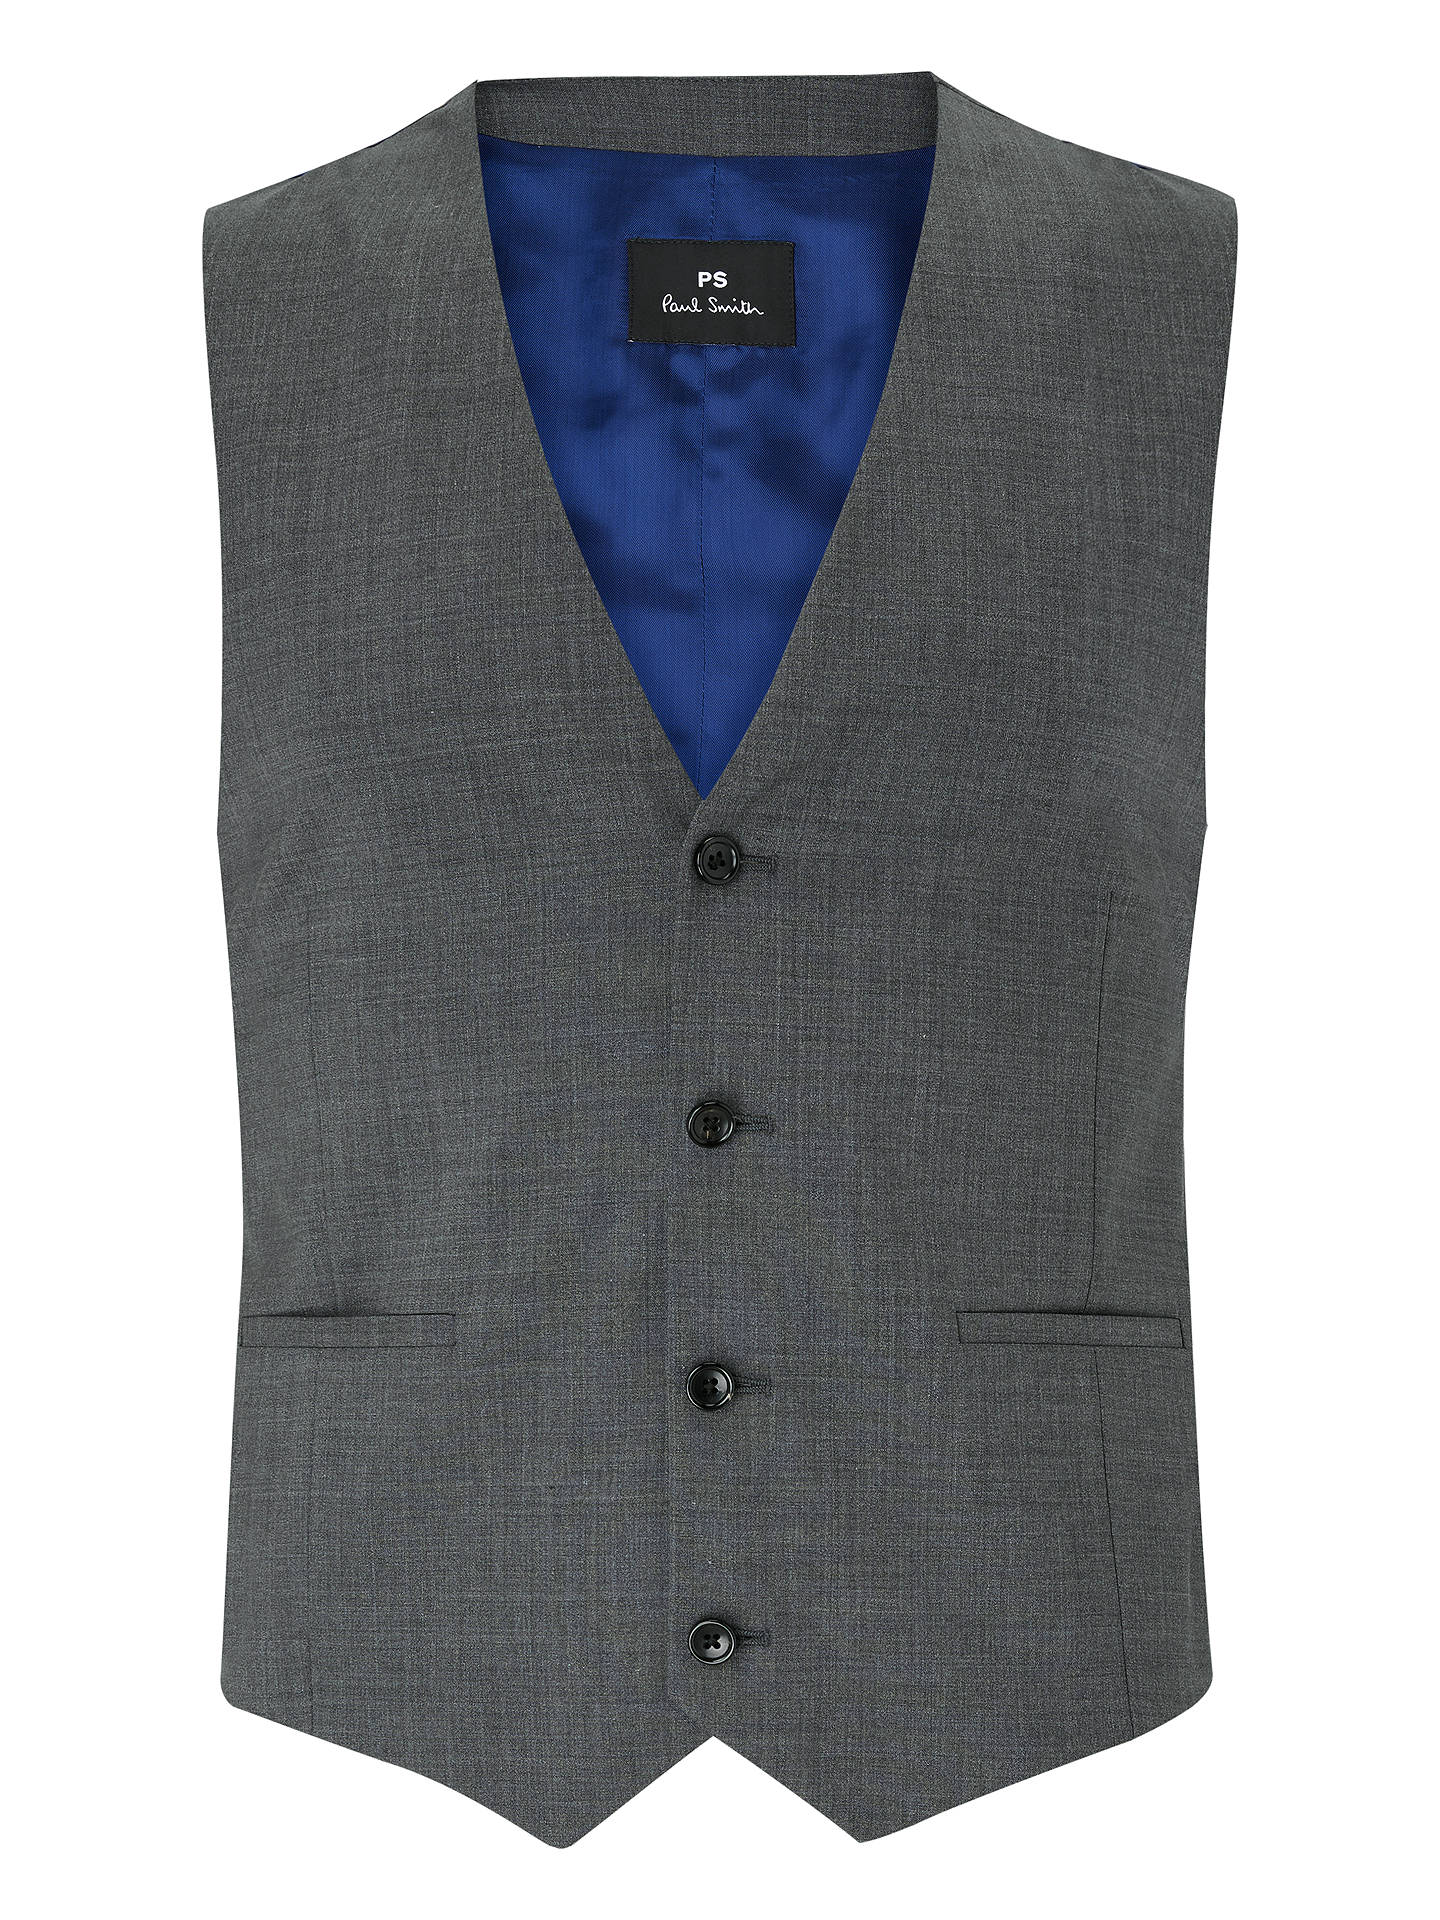 BuyPS Paul Smith Tailored Fit Waistcoat, Grey, 38R Online at johnlewis.com